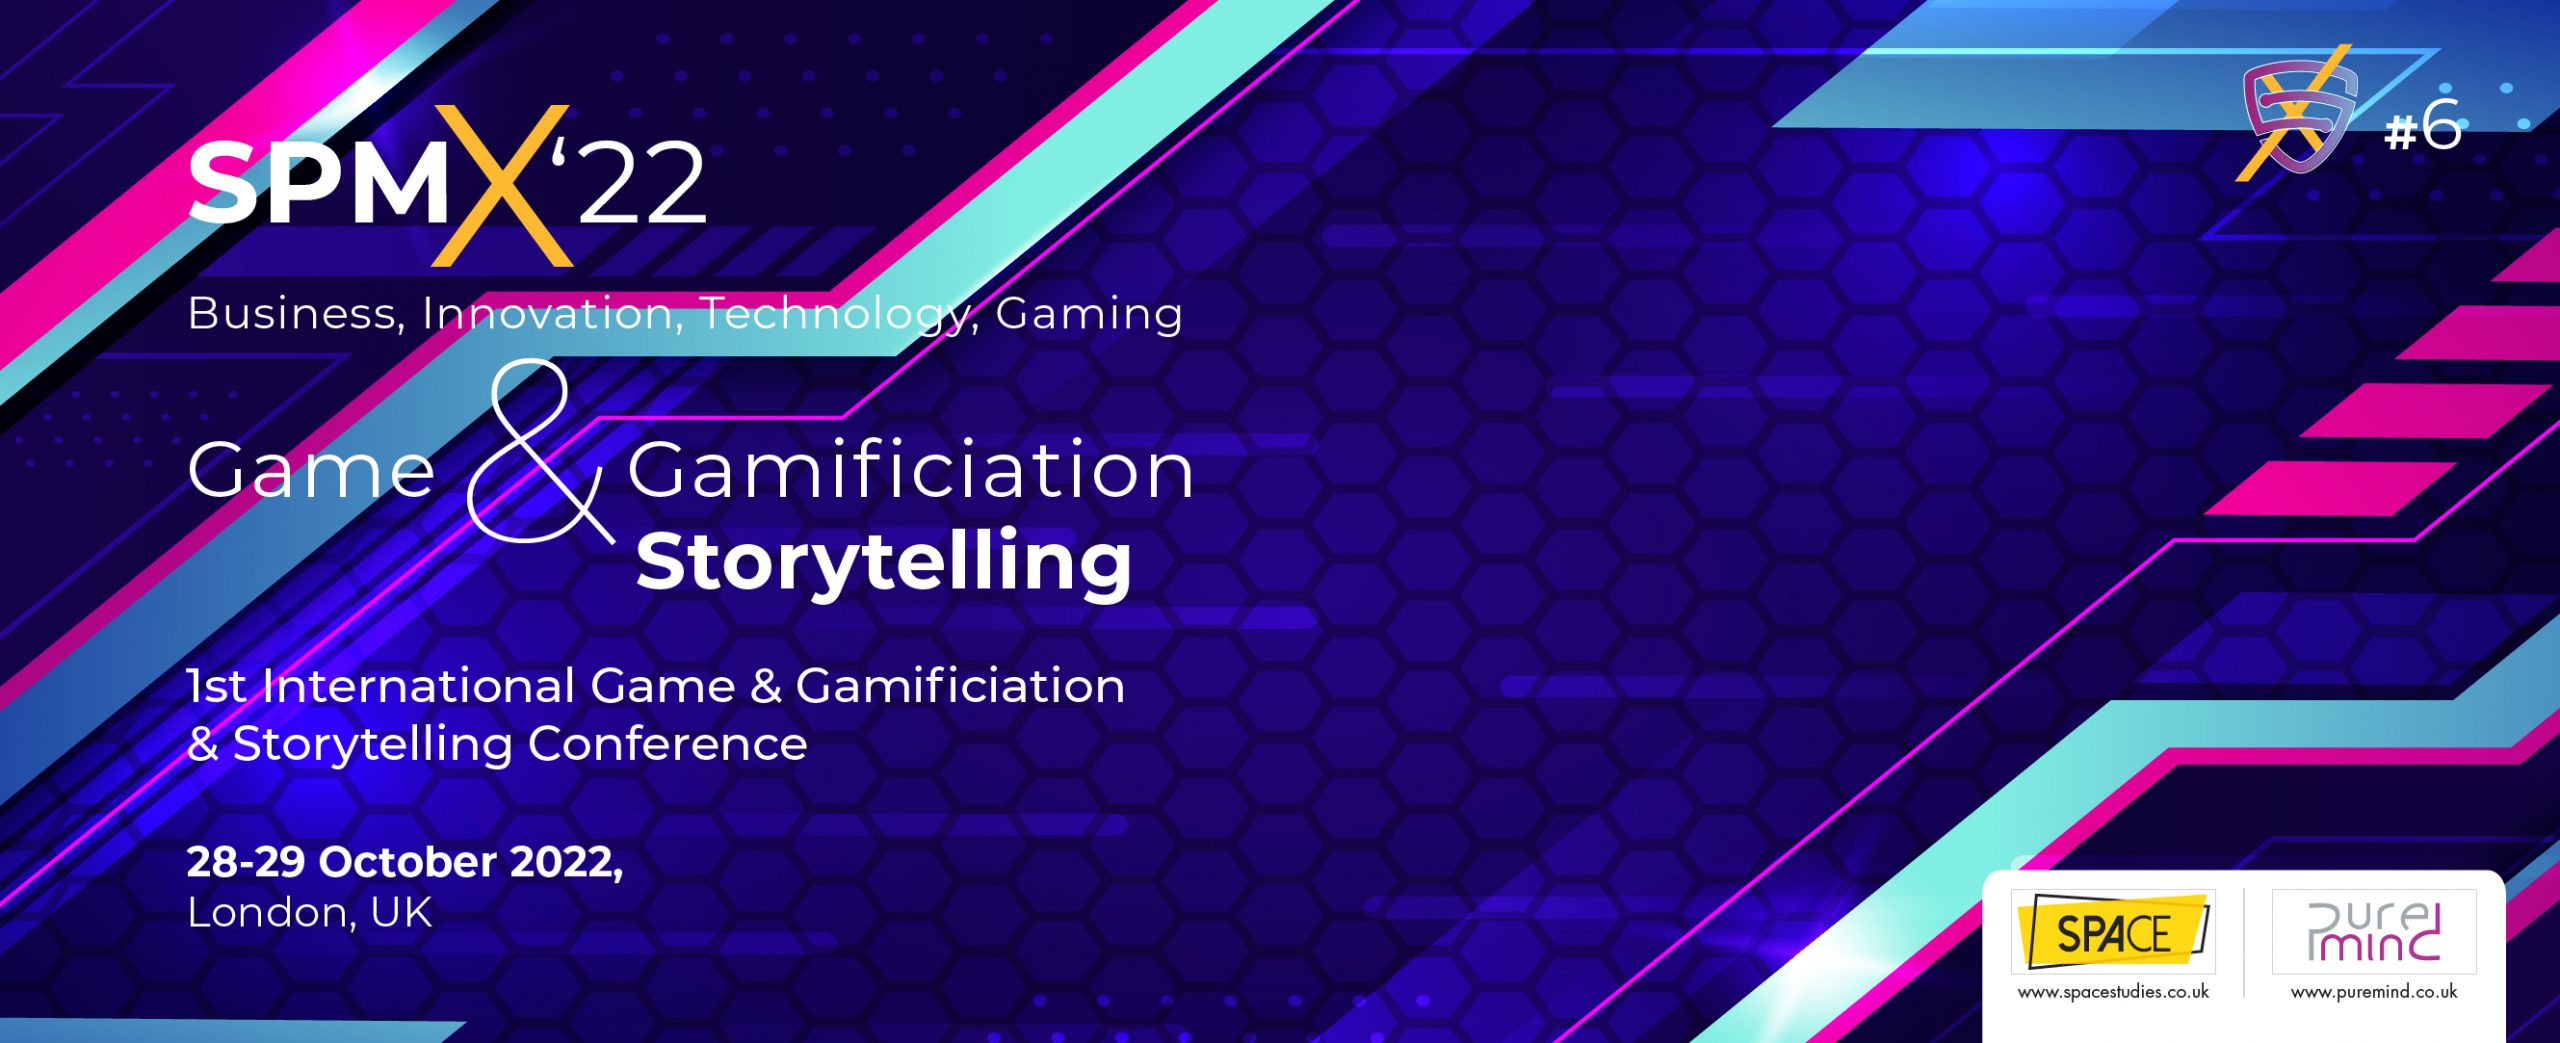 International Game & Gamification & Storytelling Conference